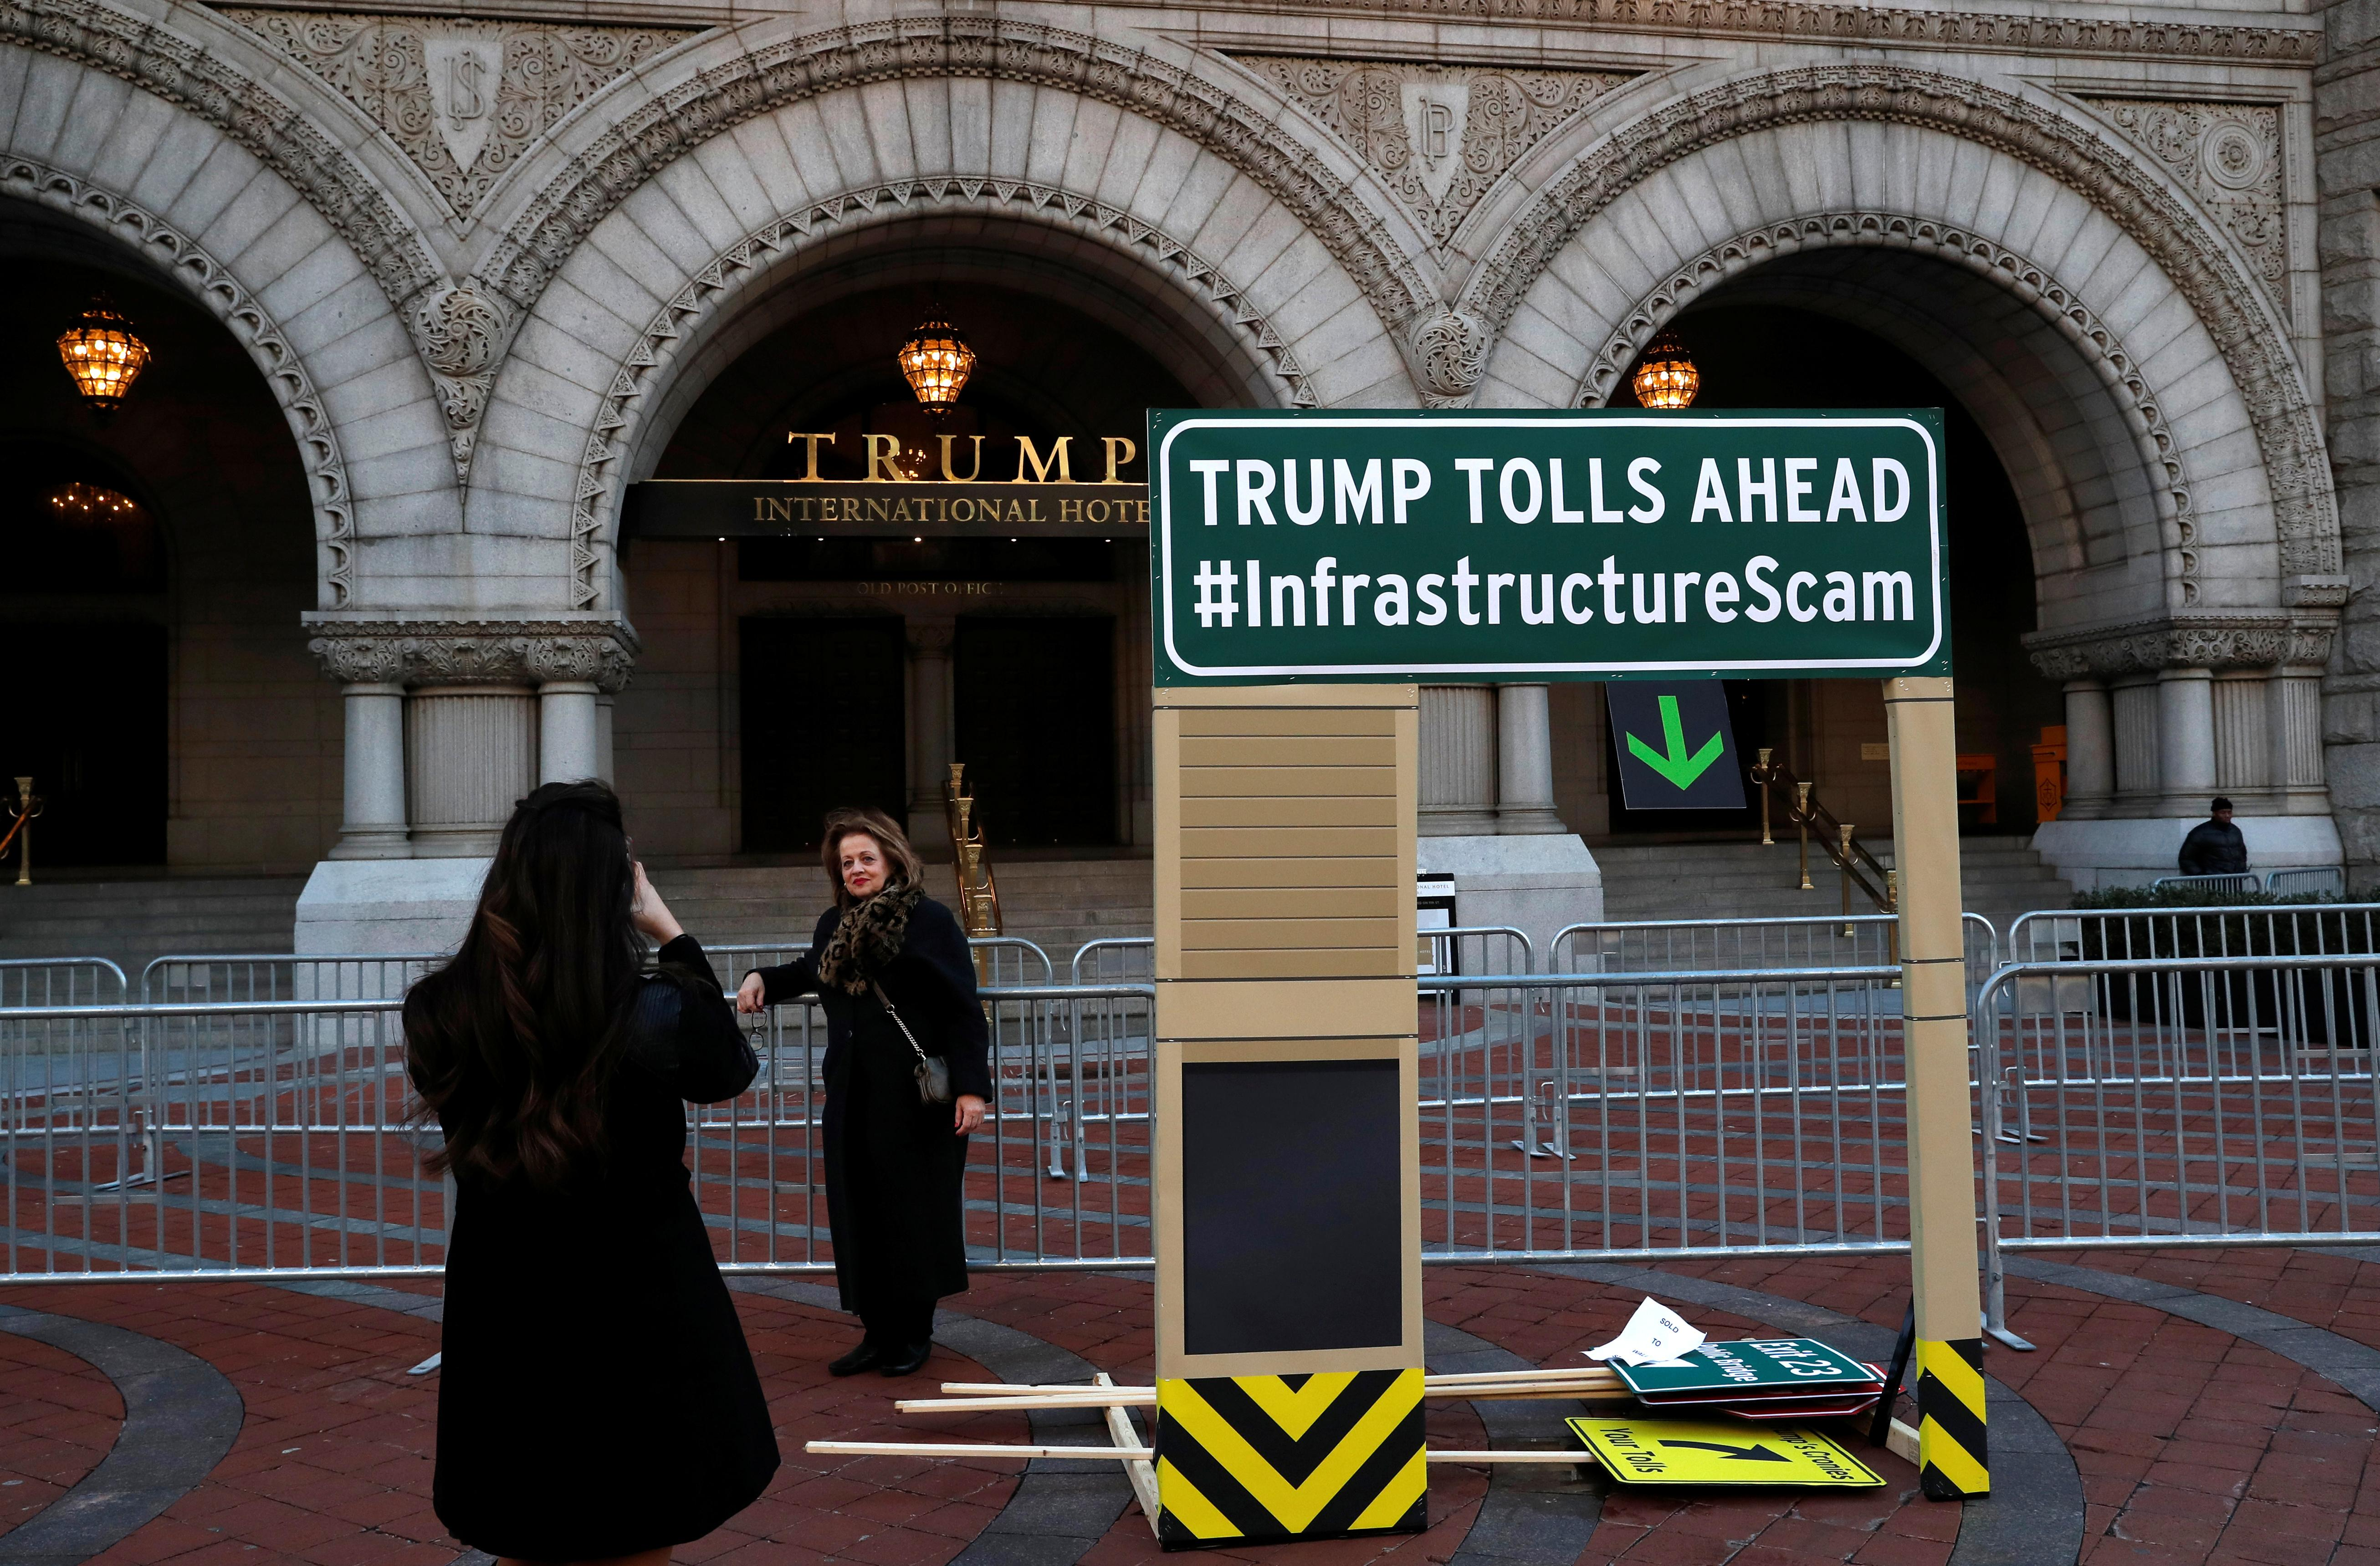 Pedestrians take photographs with Trump International Hotel next to a backdrop leftover from a protest against U.S. President Donald Trump's recently unveiled infrastructure plan in Washington, U.S., February 12, 2018.  Leah Millis